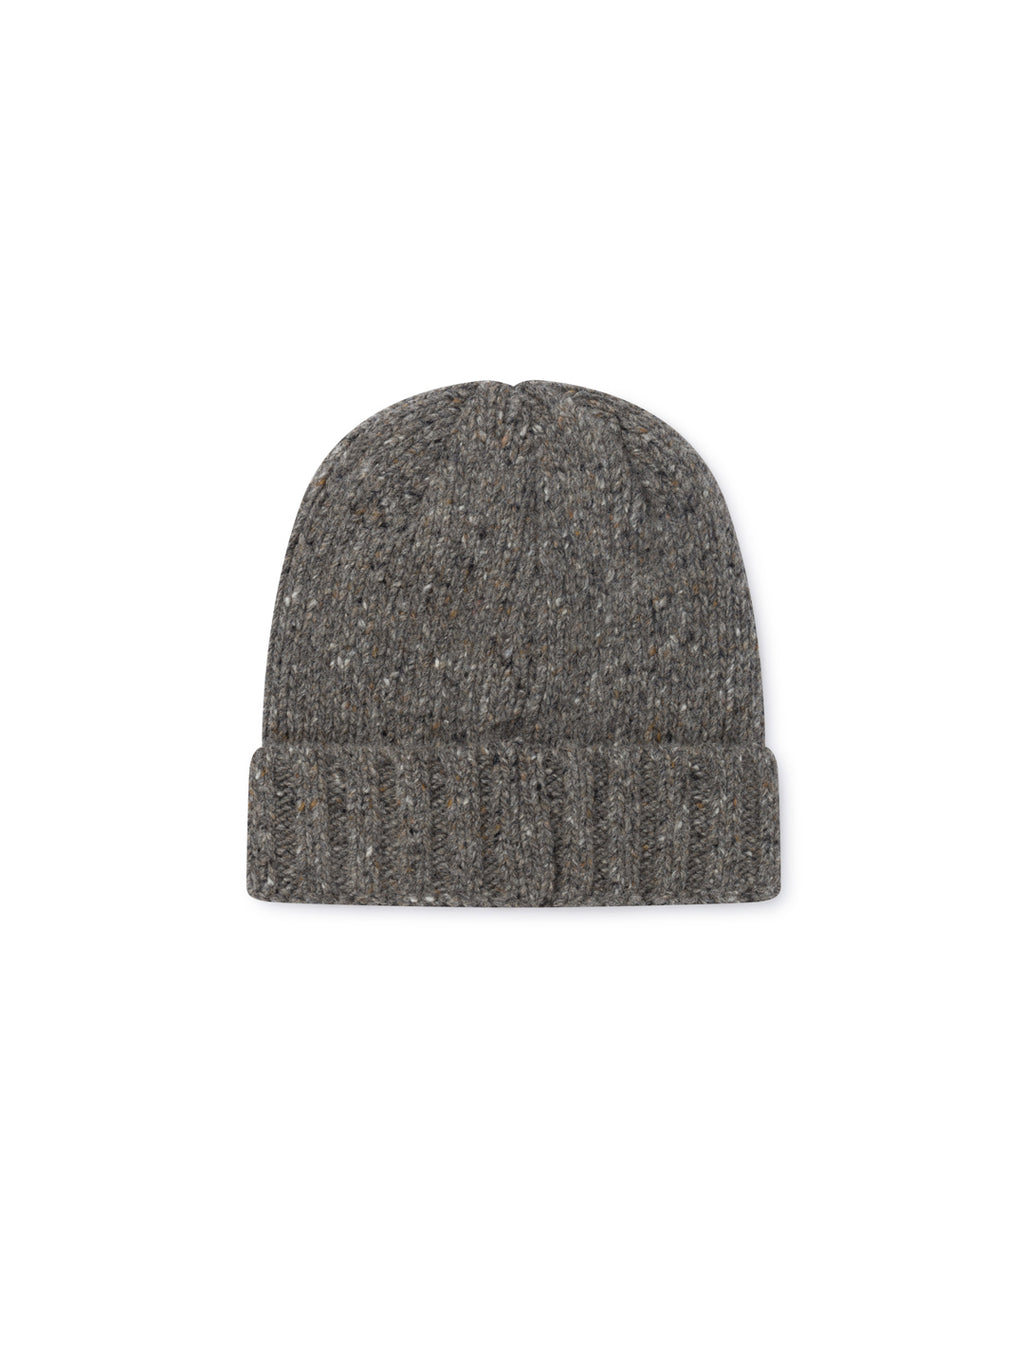 TWOTHIRDS Headwear: Jurma Beanie - Stone Grey back